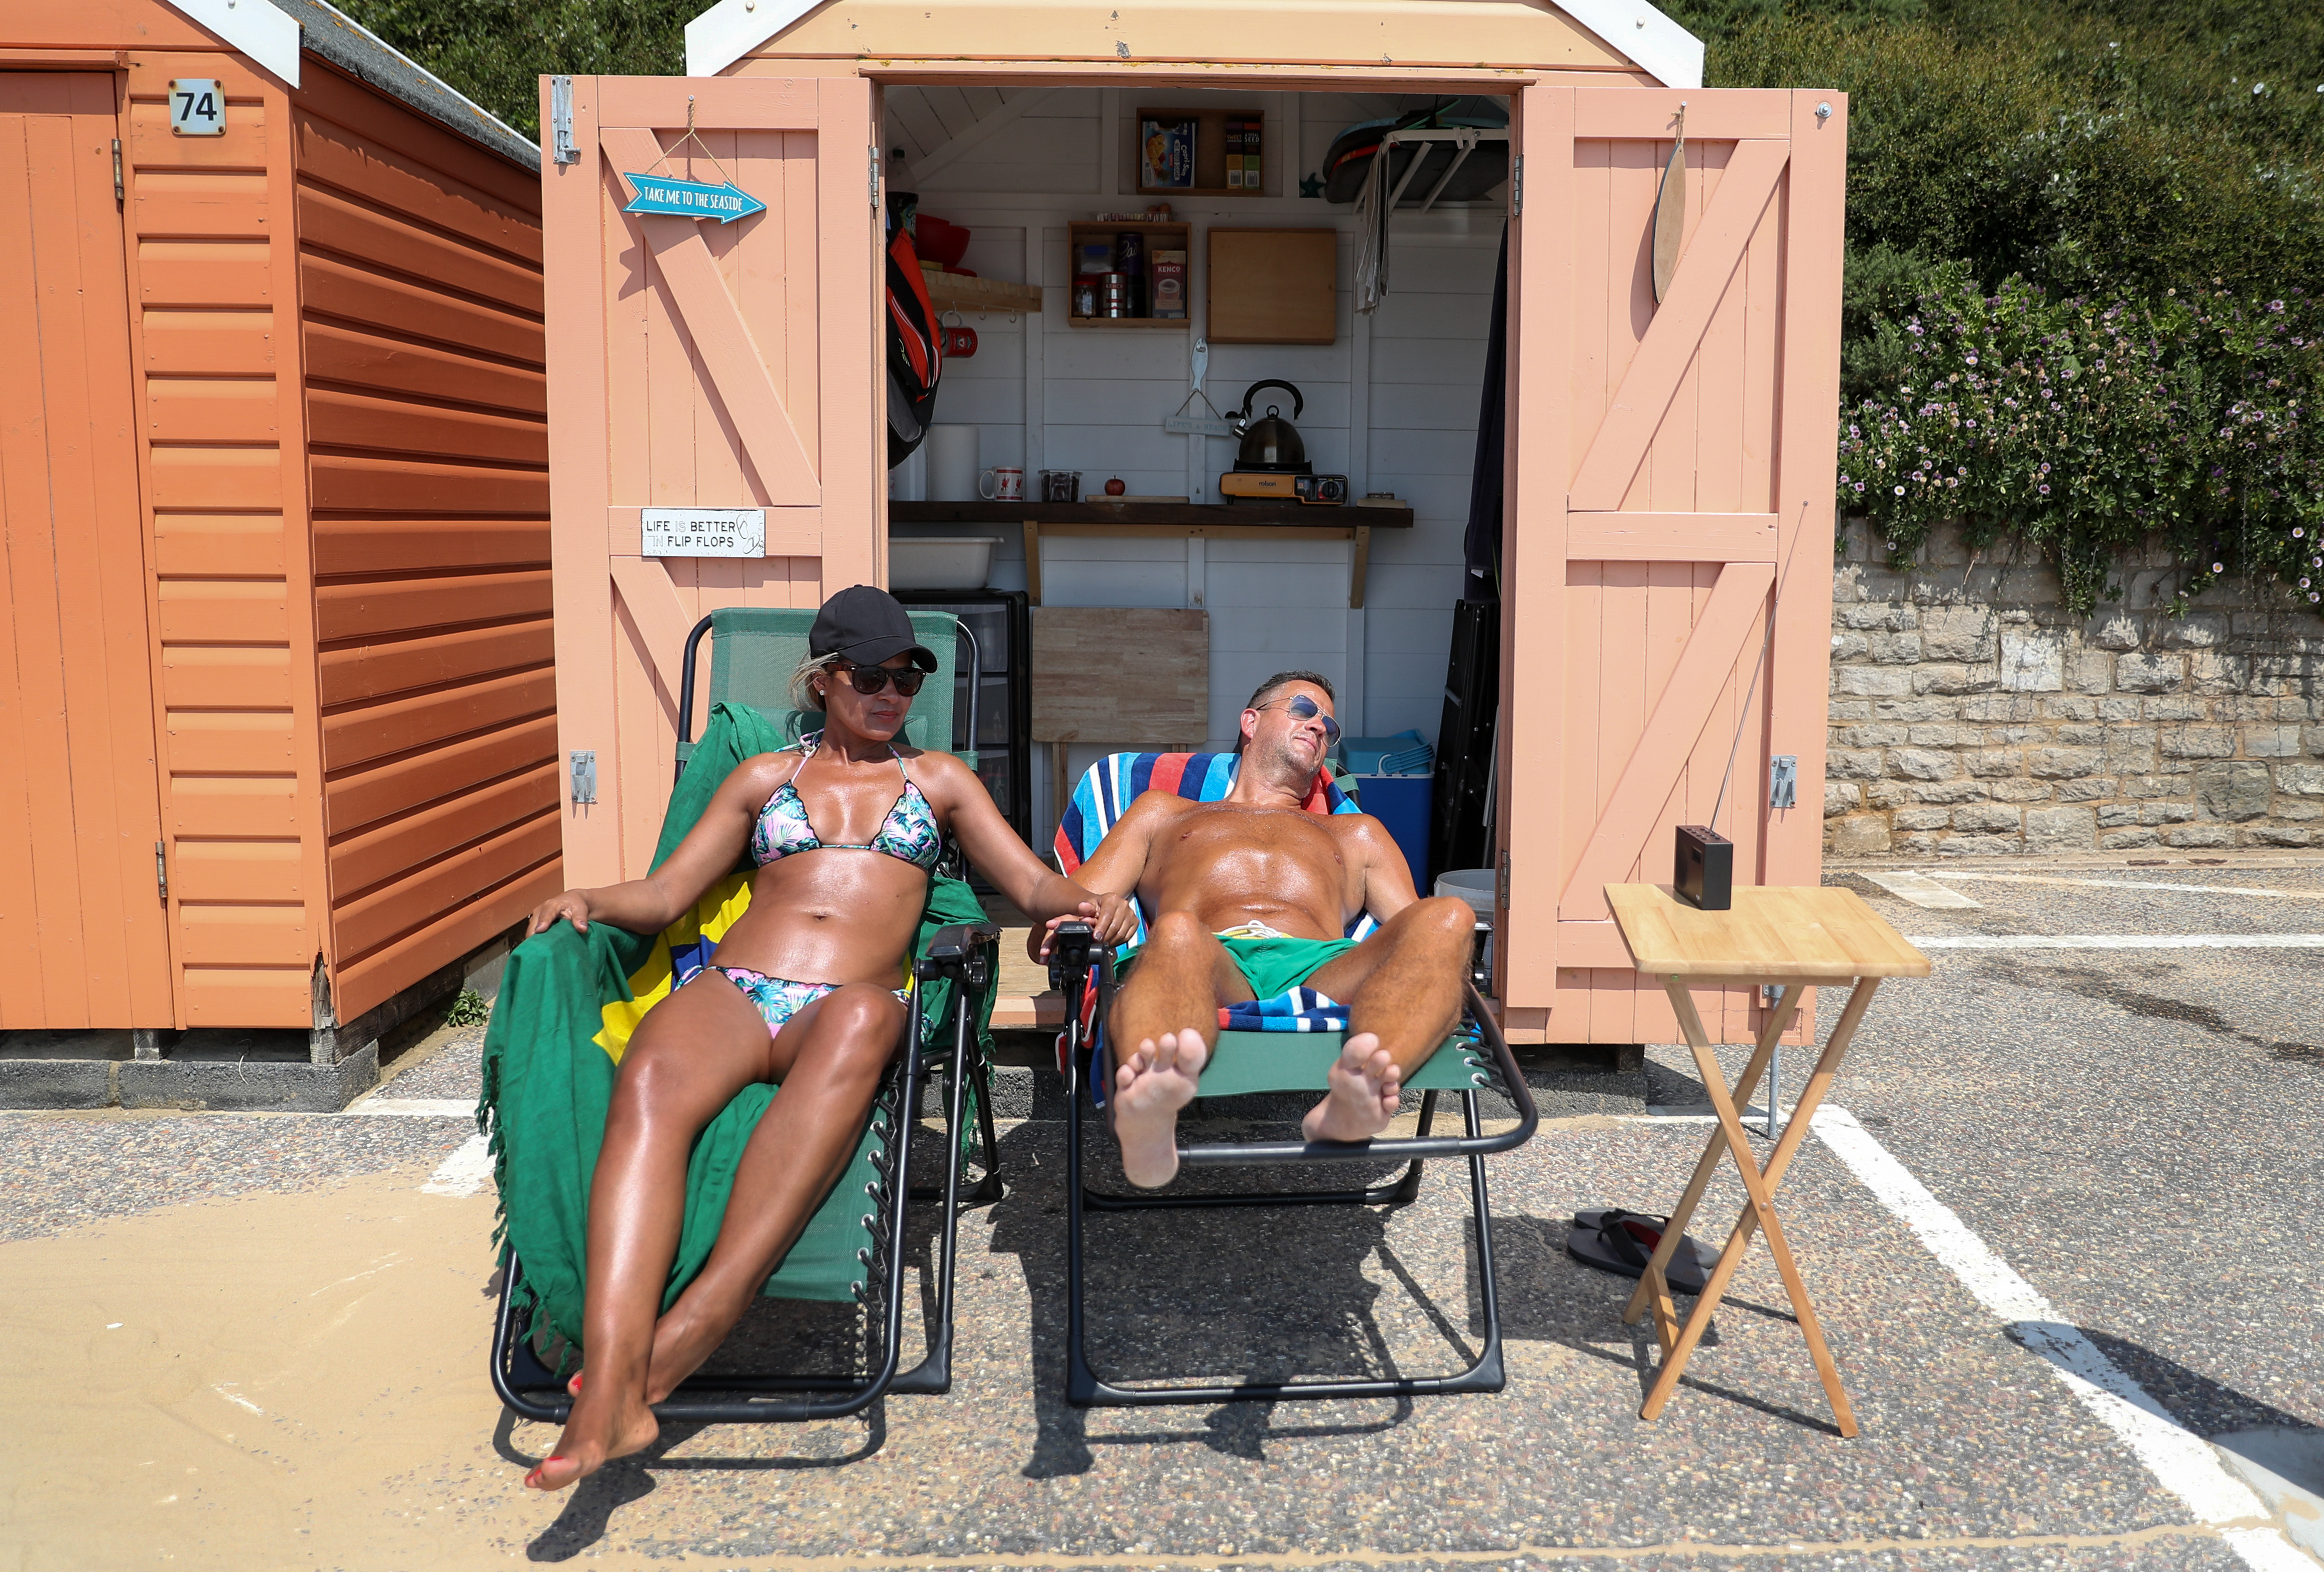 PERMISSION GIVEN A couple relax outside their beach hut on the beach in Bournemouth, Dorset, as Britain is braced for a June heatwave with temperatures set to climb into the mid-30s this week. (Photo by Andrew Matthews/PA Images via Getty Images)